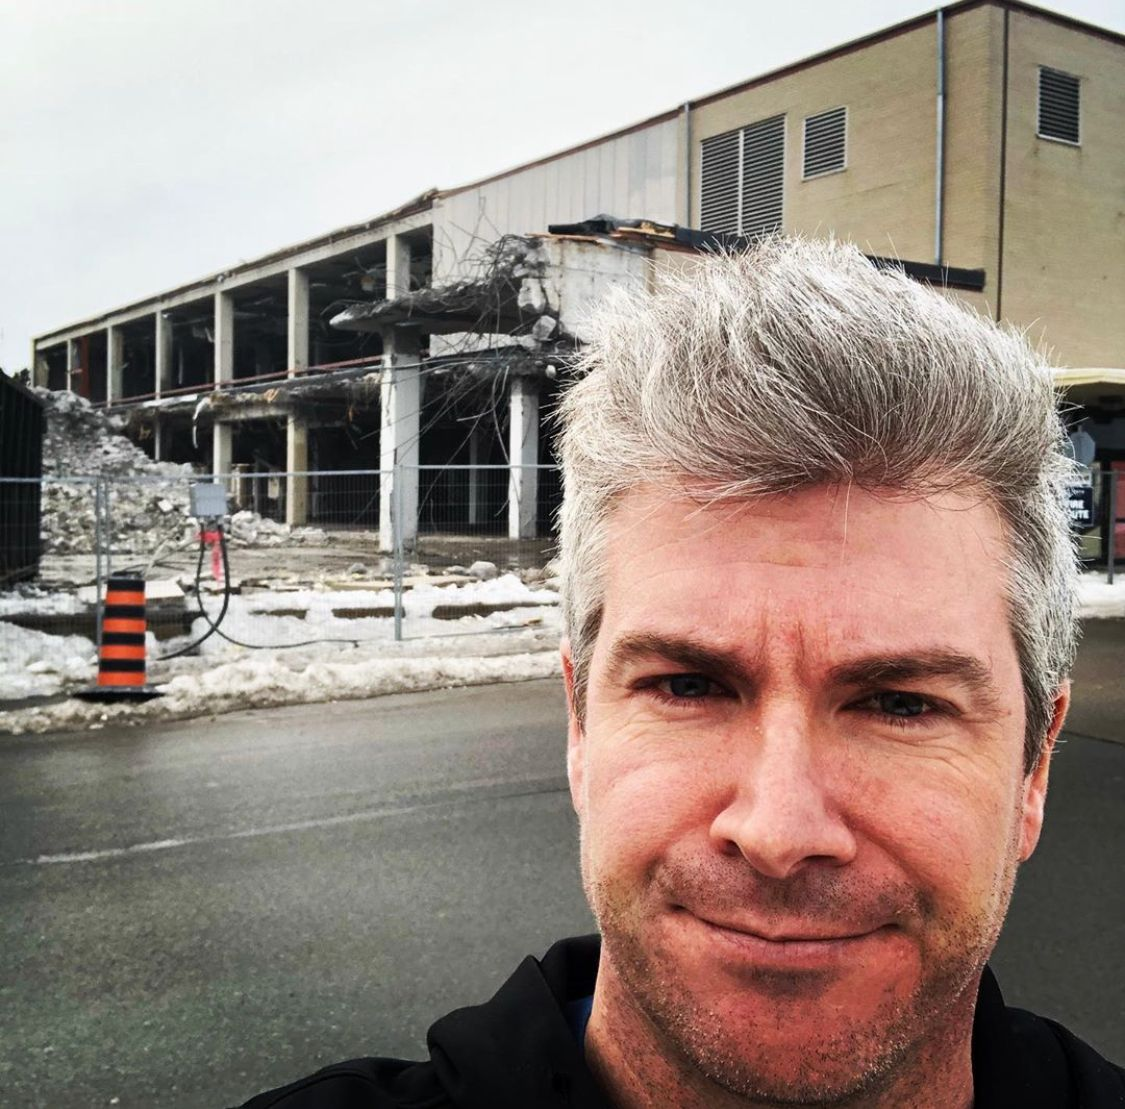 A selfie showing Dan O'Toole opposite a construction site and he looks dashing up-close.